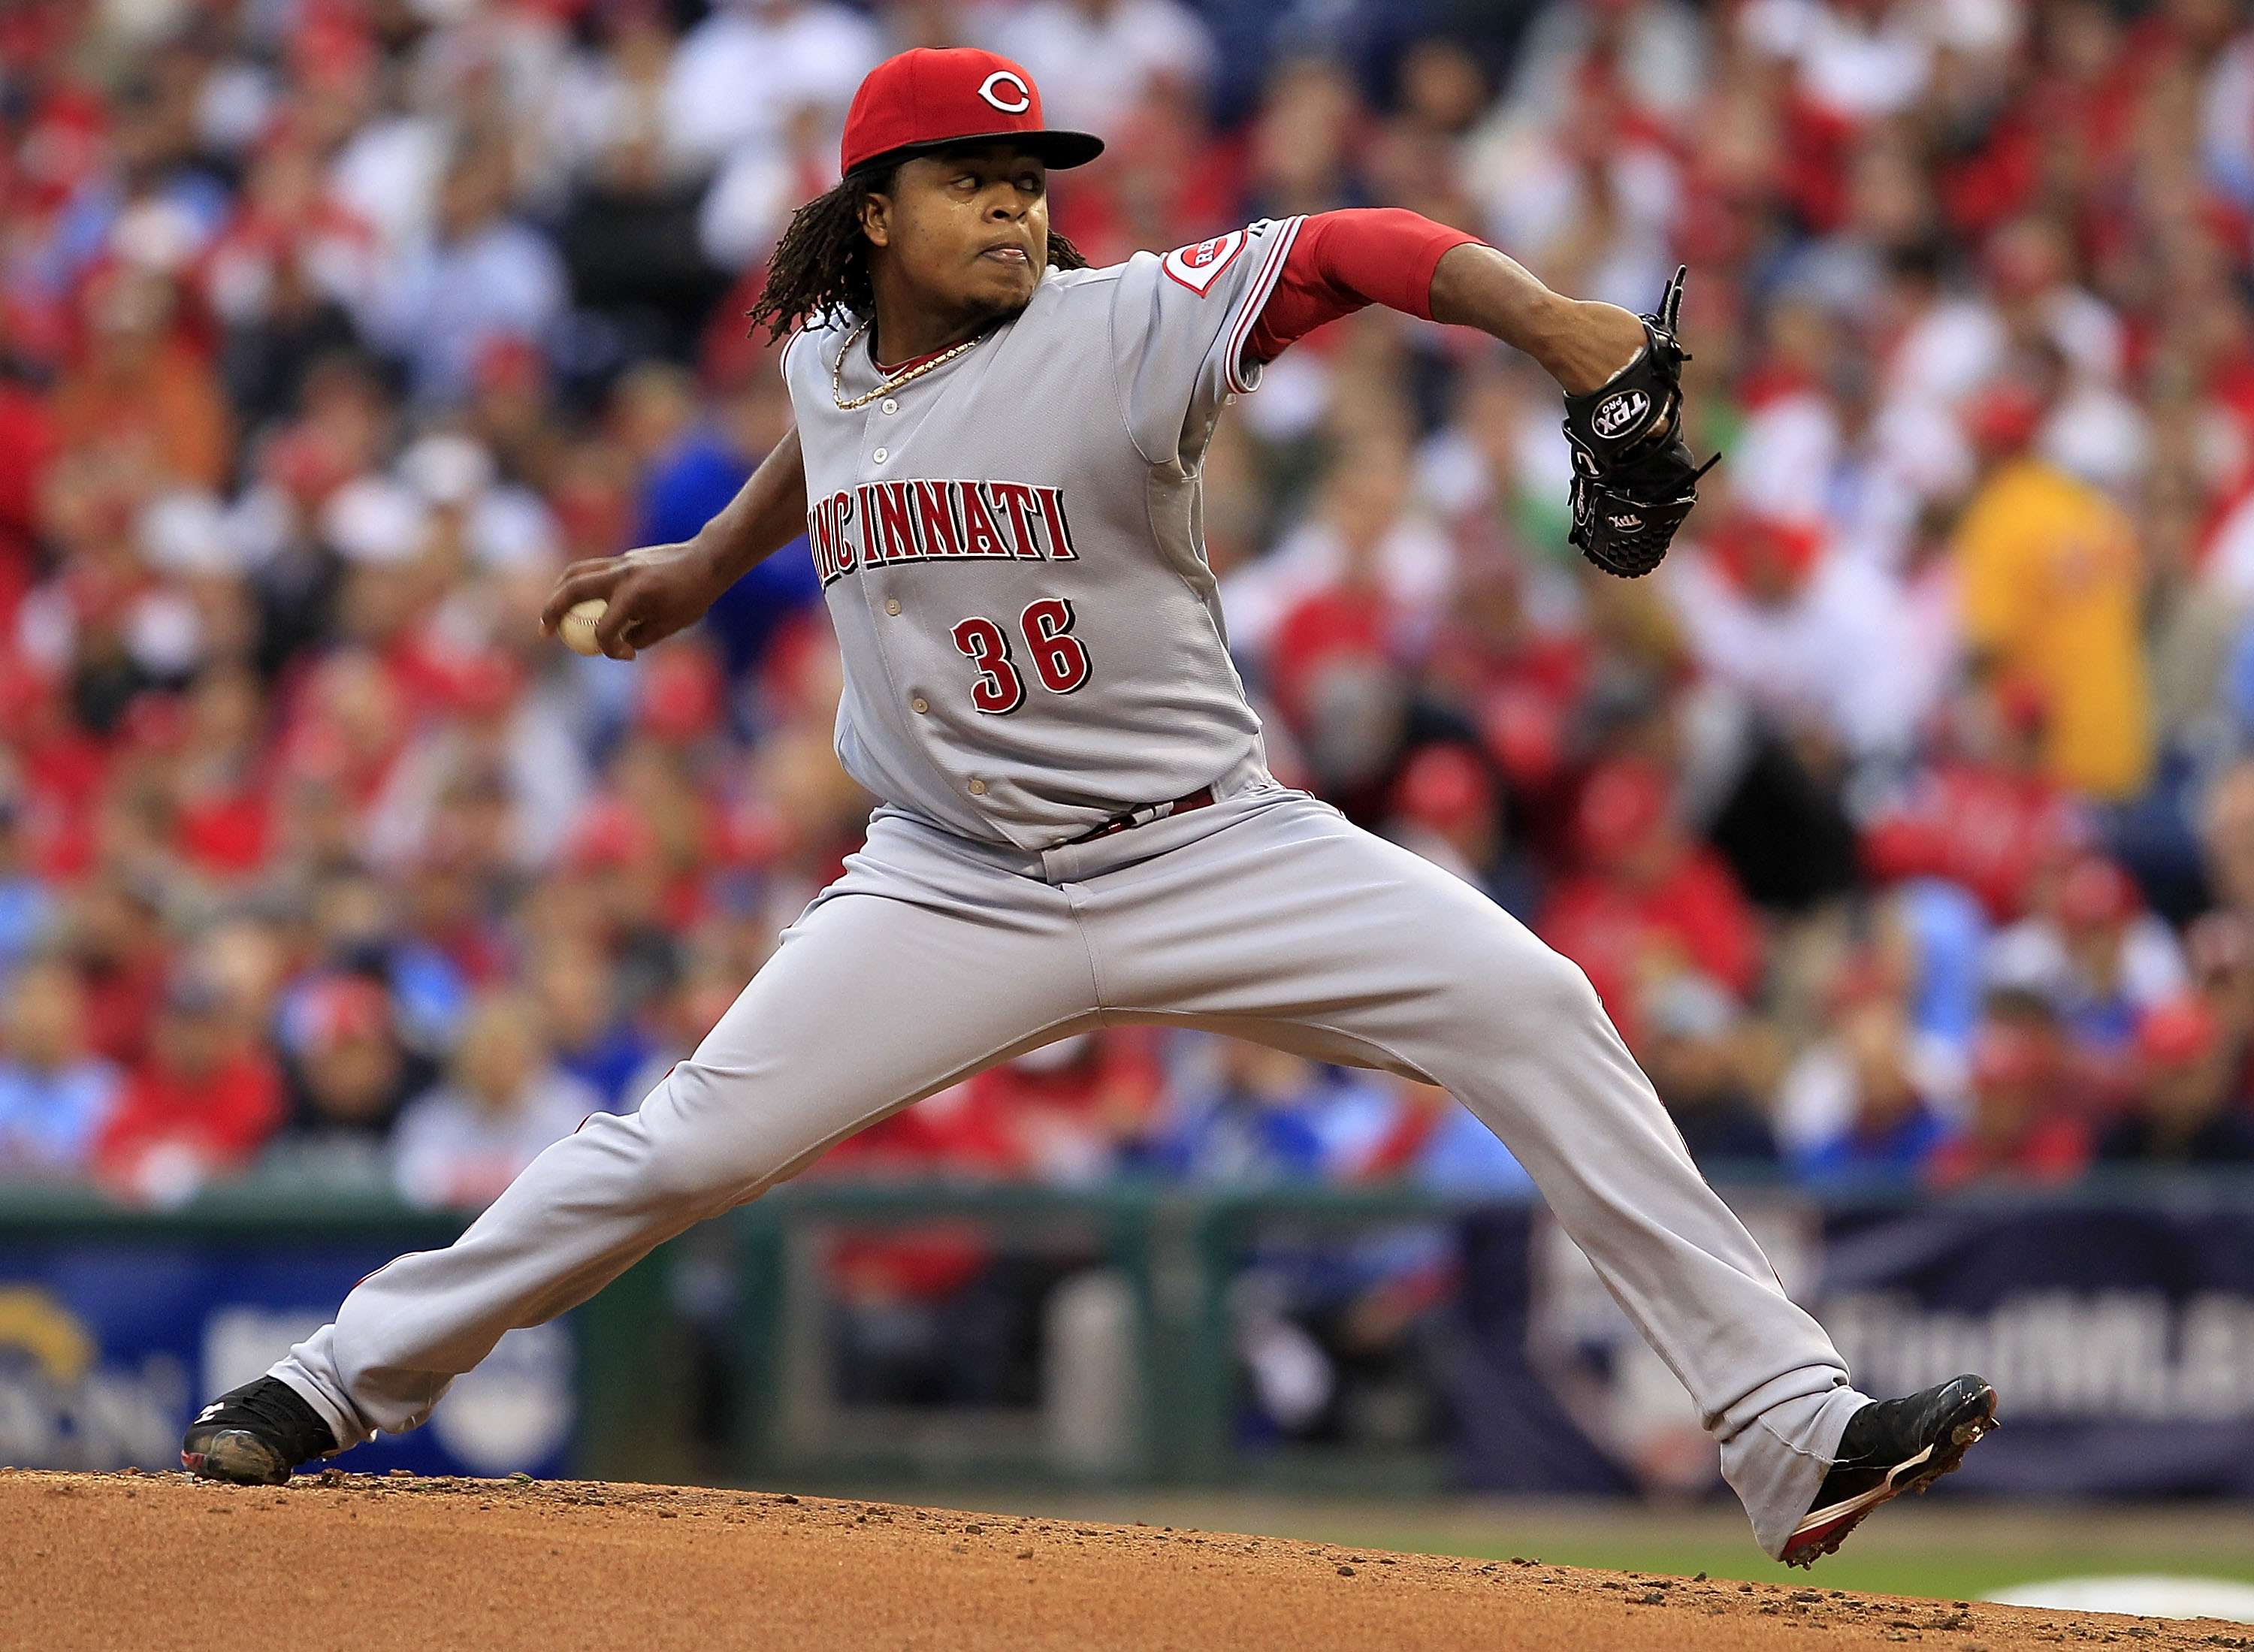 PHILADELPHIA - OCTOBER 06:  Edinson Volquez #36 of the Cincinnati Reds delivers in Game 1 of the NLDS against the Philadelphia Phillies at Citizens Bank Park on October 6, 2010 in Philadelphia, Pennsylvania.  (Photo by Chris Trotman/Getty Images)